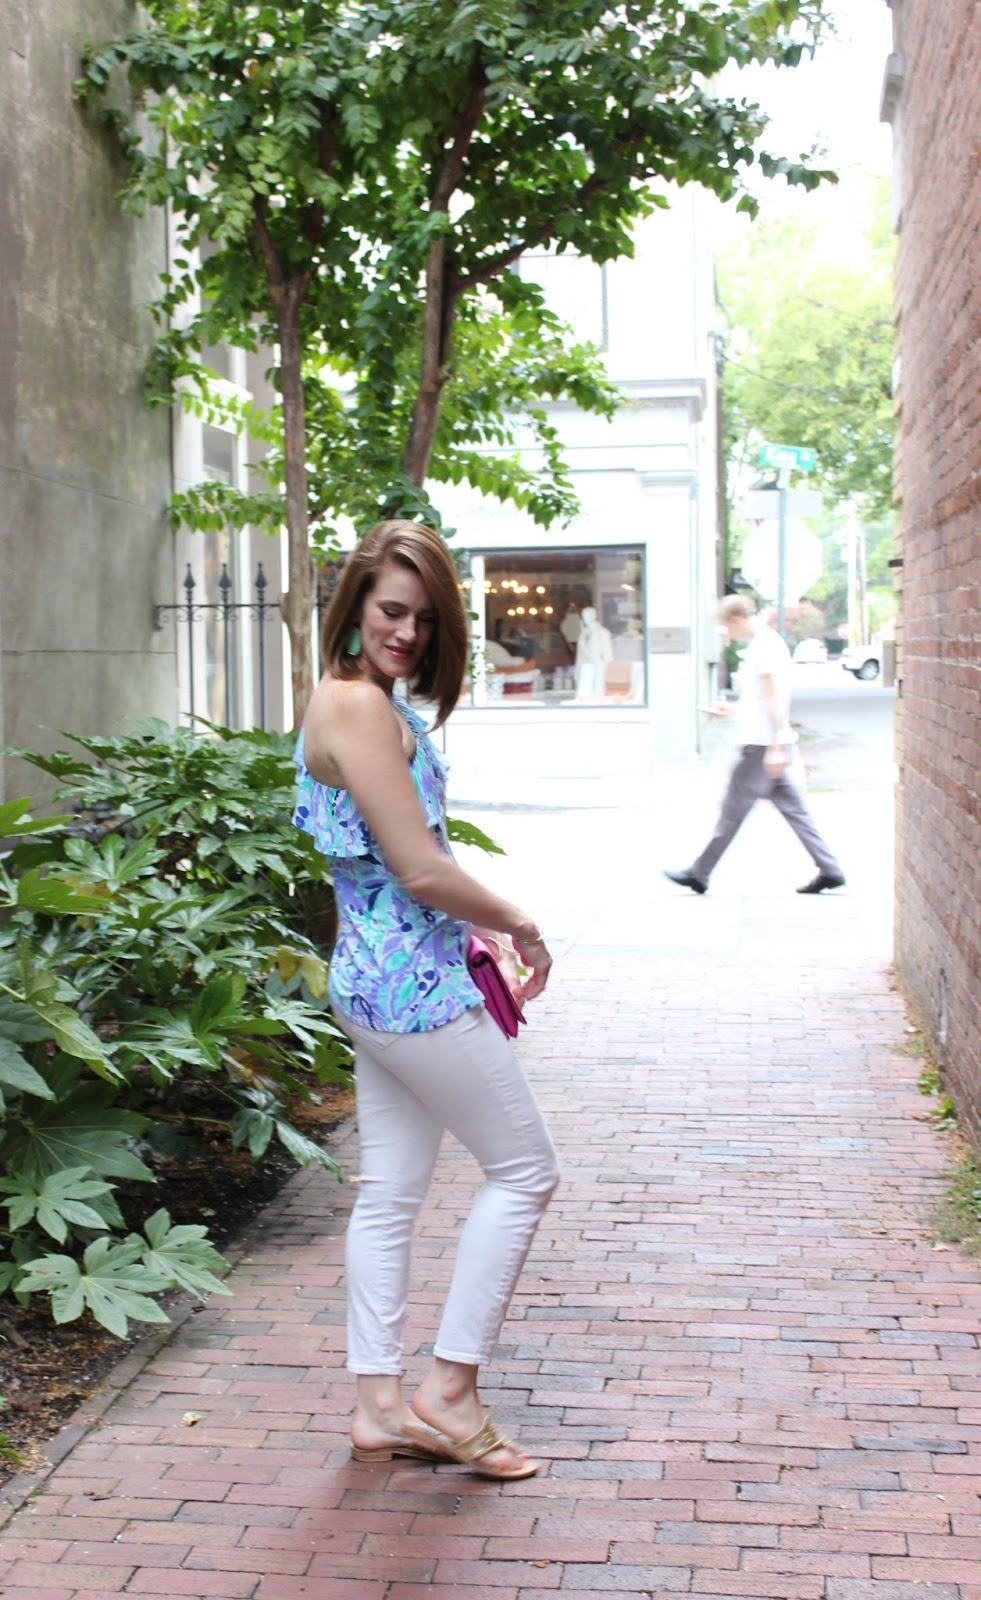 lilly get inky - lilly pulitzer one shoulder top - lilly pulitzer - lilly pulitzer neveah one shoulder top - lilly pulitzer neveah top